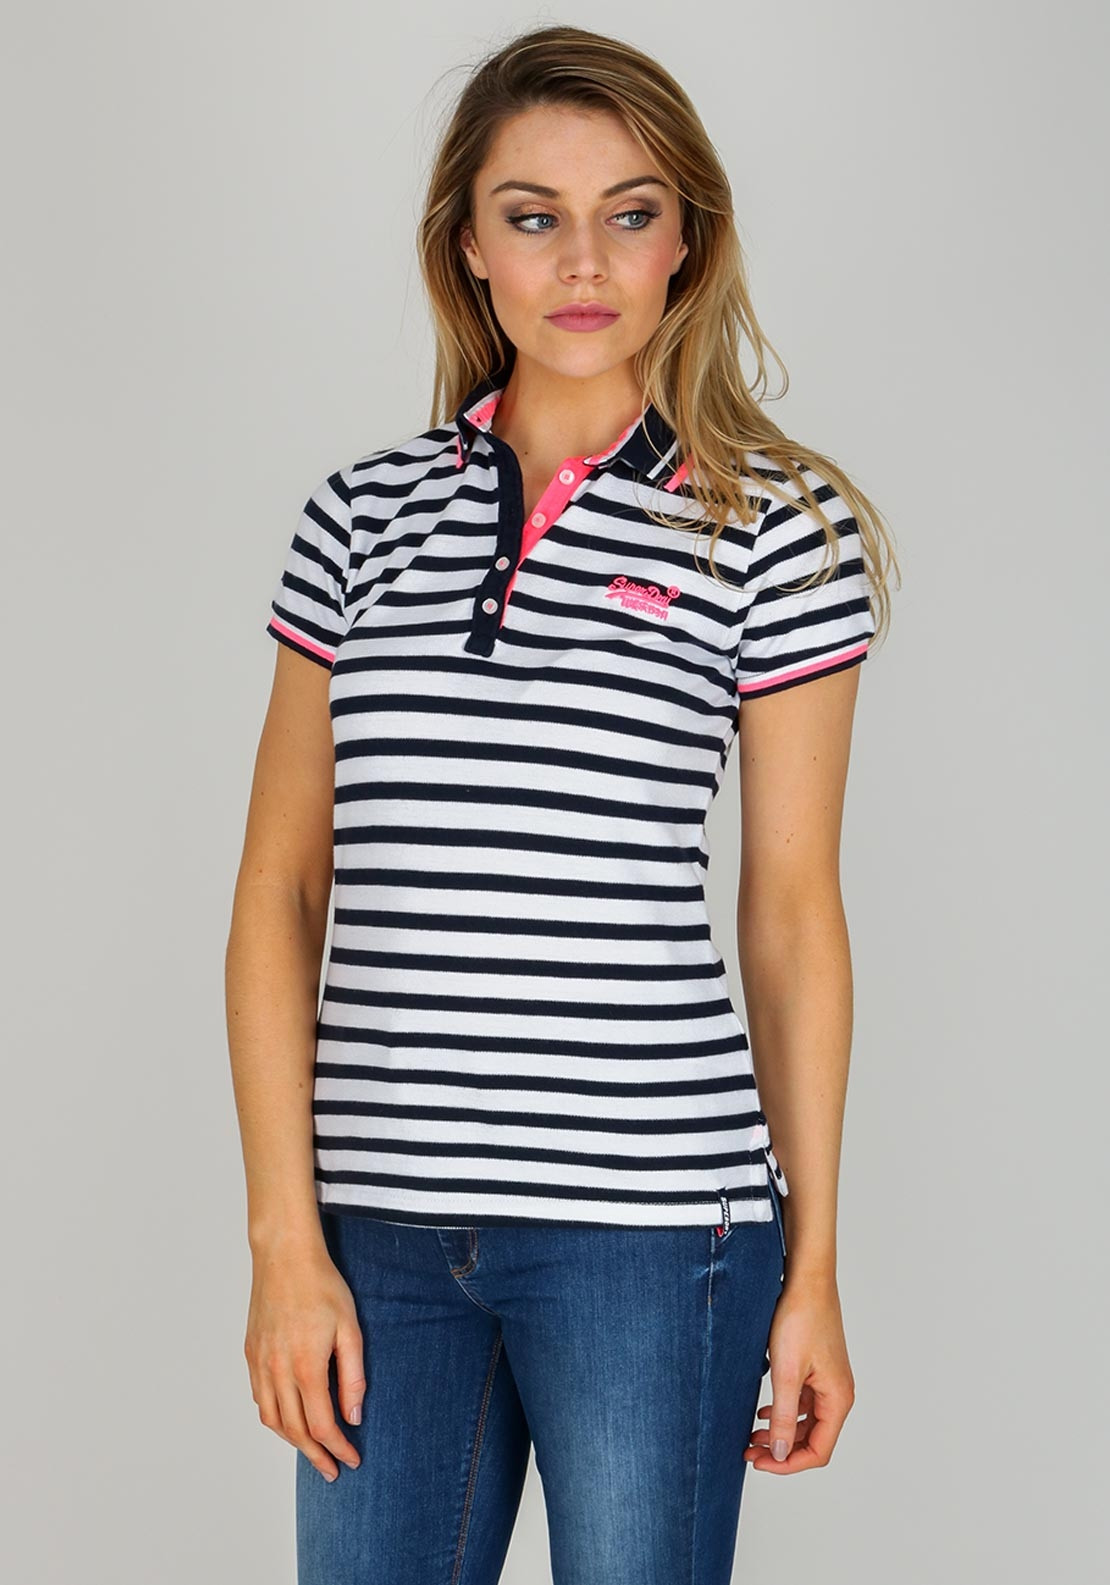 on feet at ever popular detailing Superdry Womens Pacific Stripe Polo Shirt, Navy